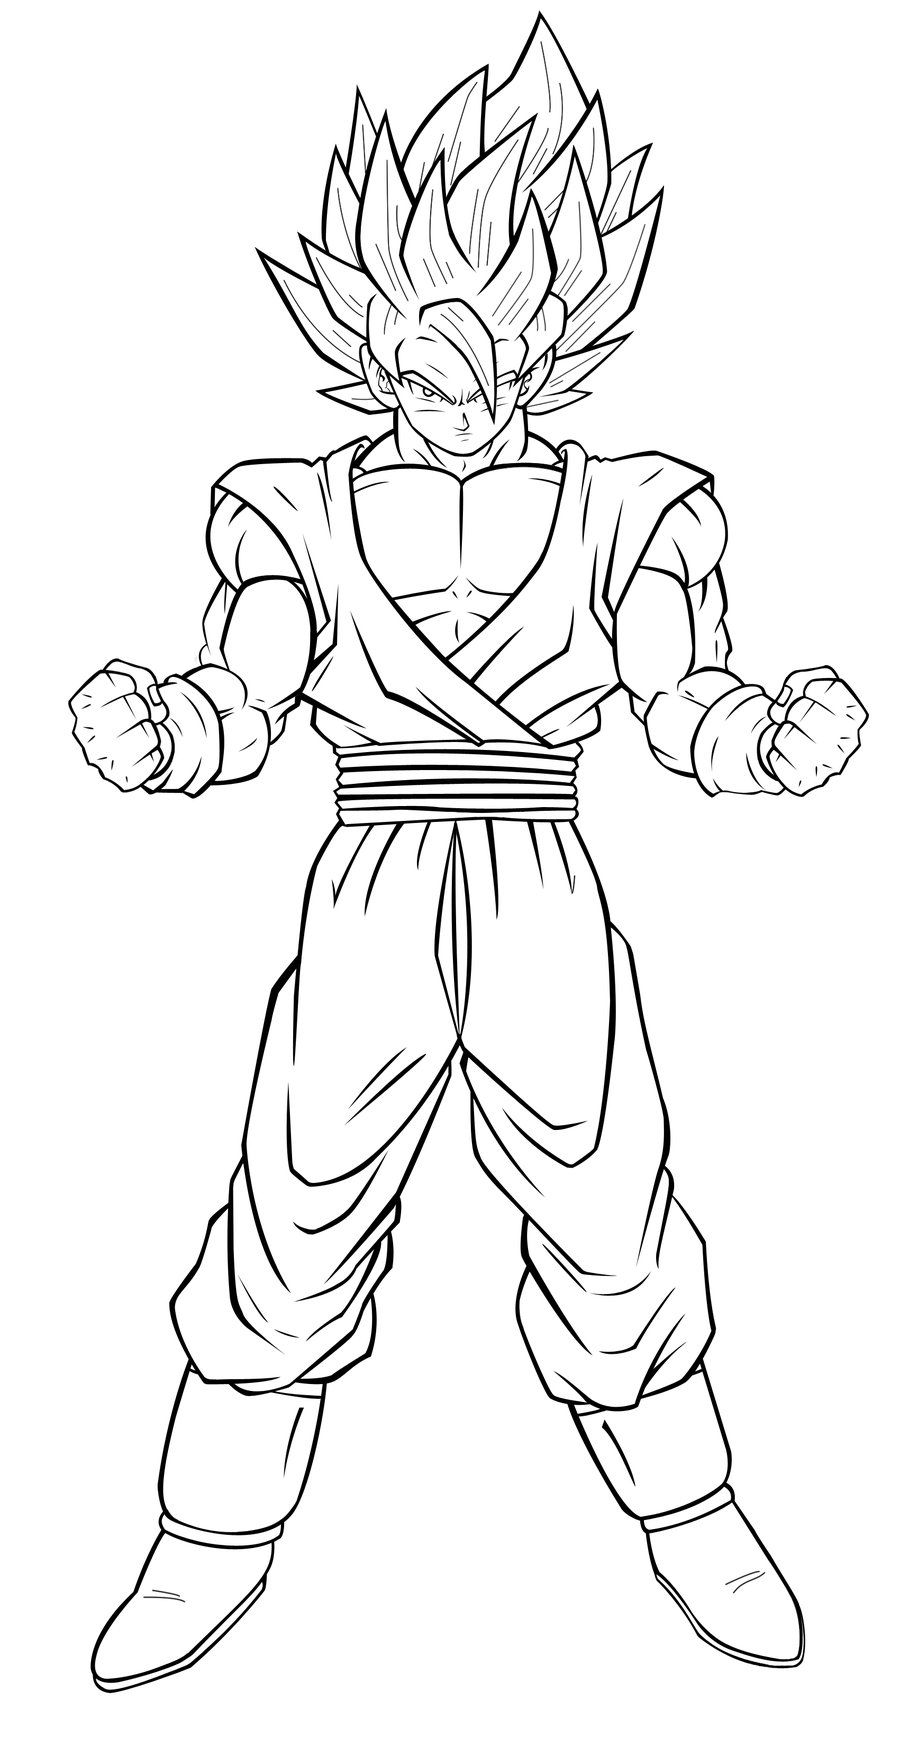 Coloriage dragon ball z sangoku super sayen 3 dragon ball z coloriage dragon ball coloriage - Dessin de dragon ball super ...